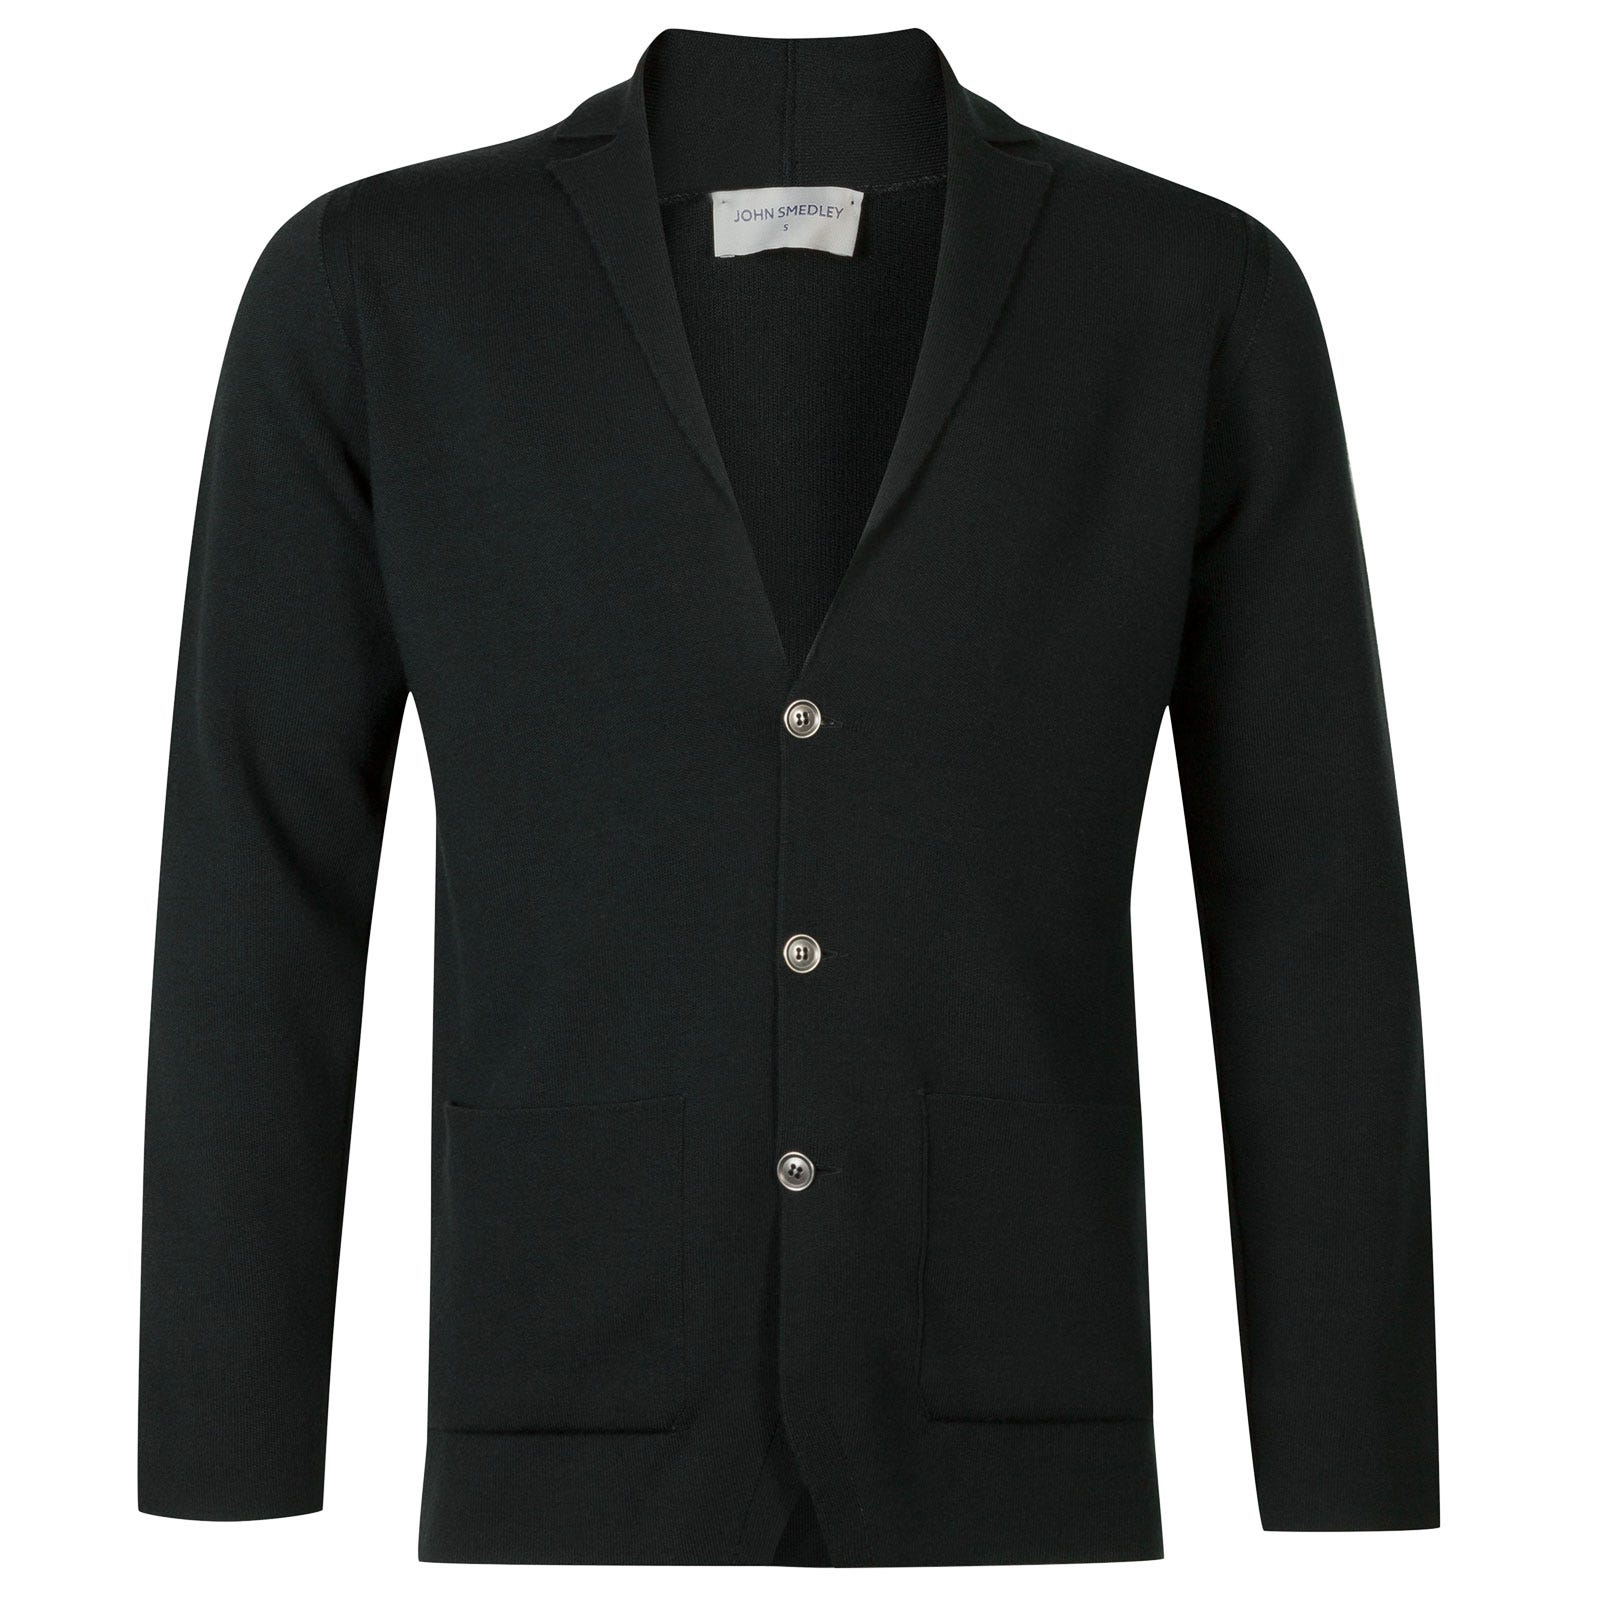 John Smedley Oxland Merino Wool Jacket in Racing Green-XL